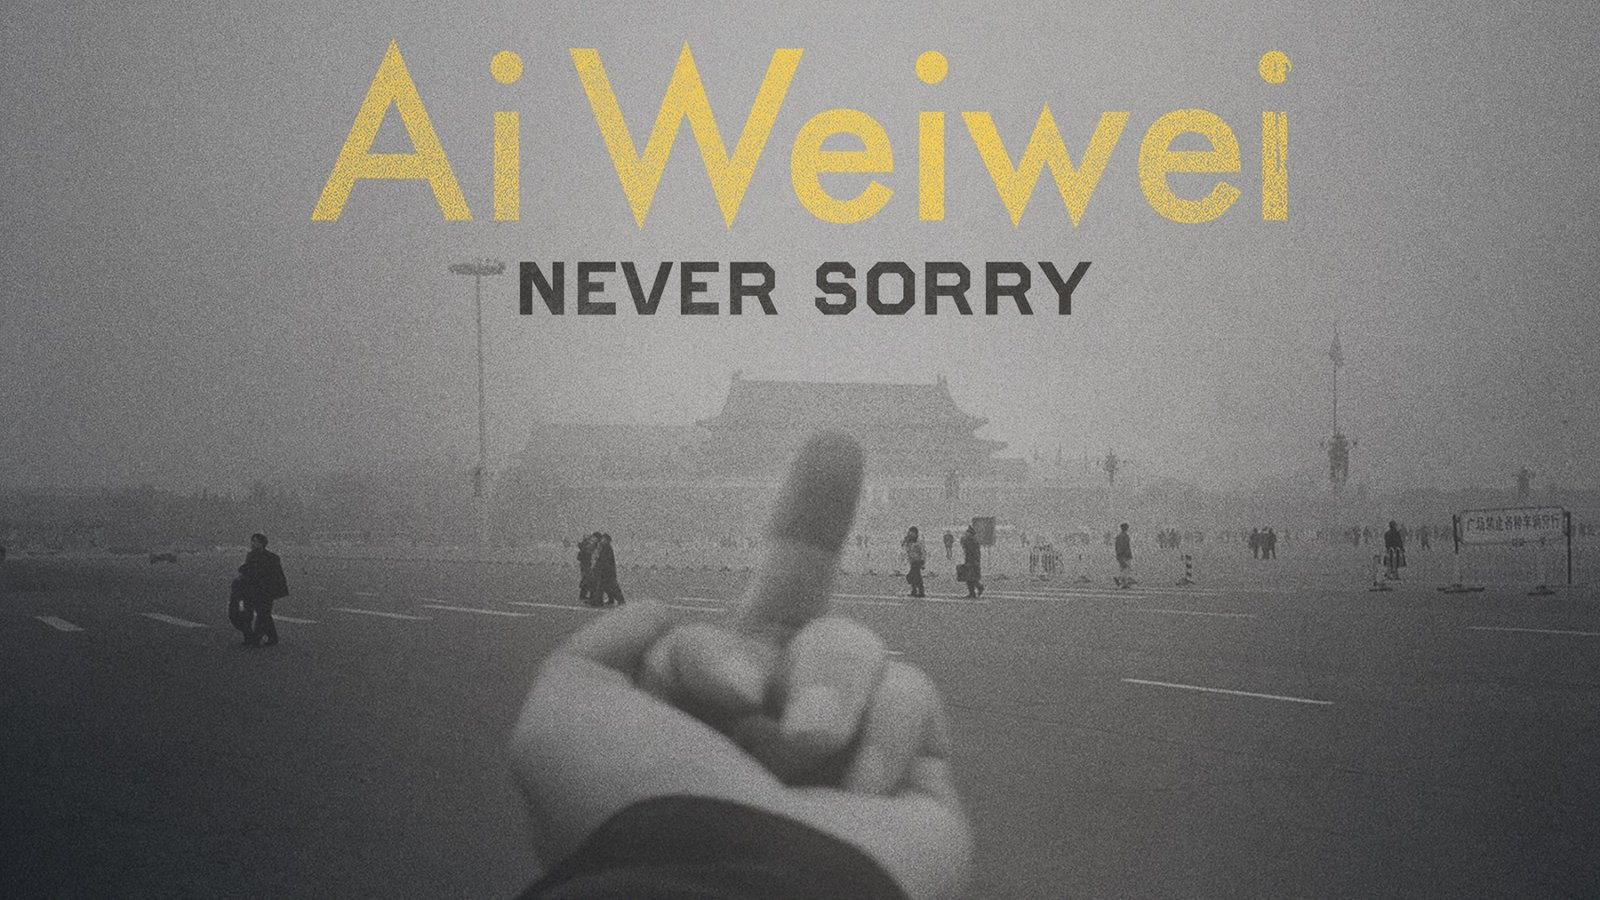 Ai Weiwei: Never Sorry - The Work of Artist and Activist, Ai Weiwei